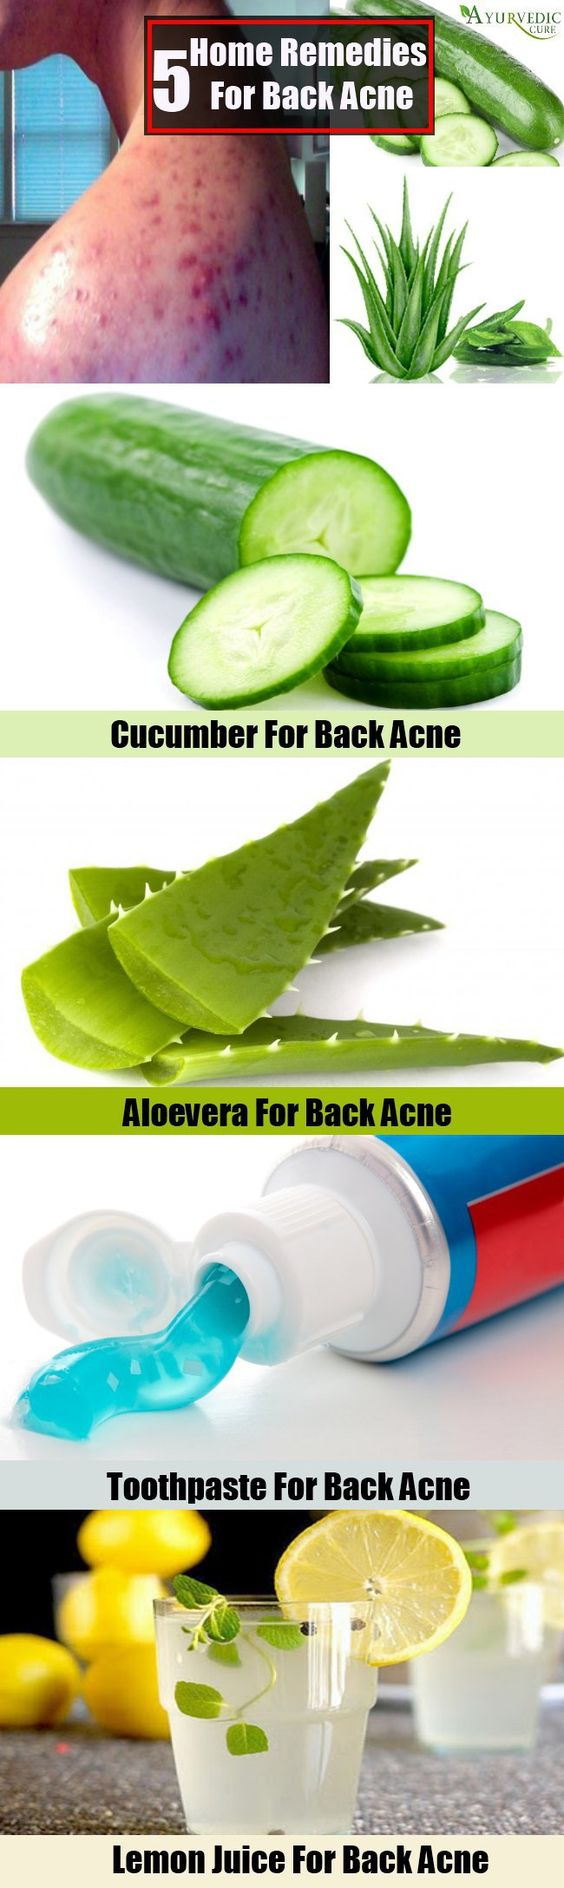 Effective Home Remedies For Back Acne: